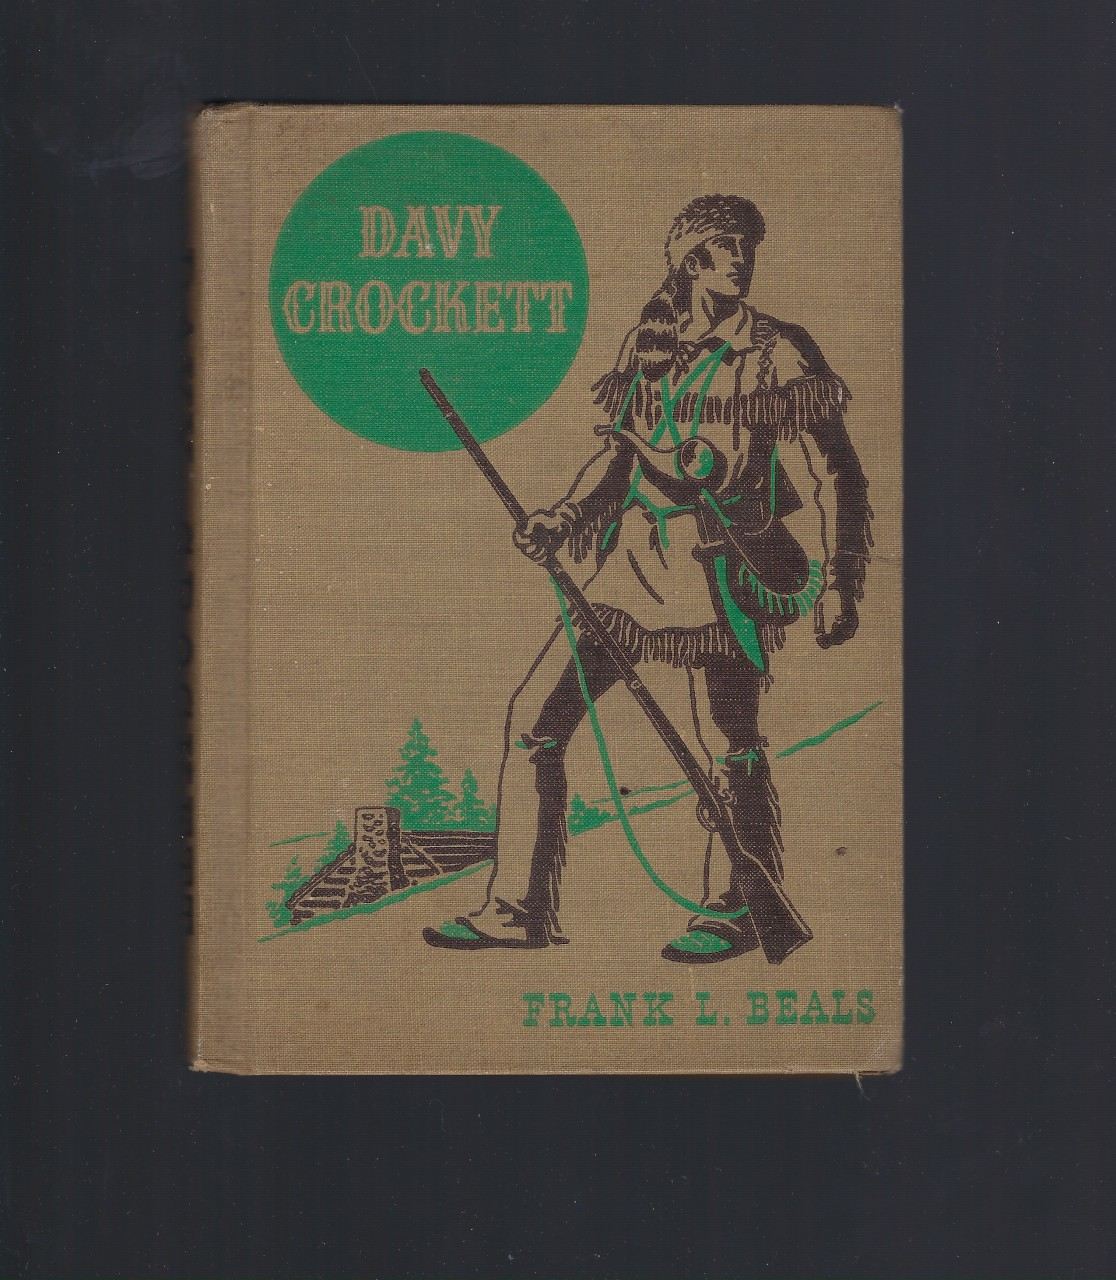 Davy Crockett (The American Adventure Series) 1941, Frank Lee Beals